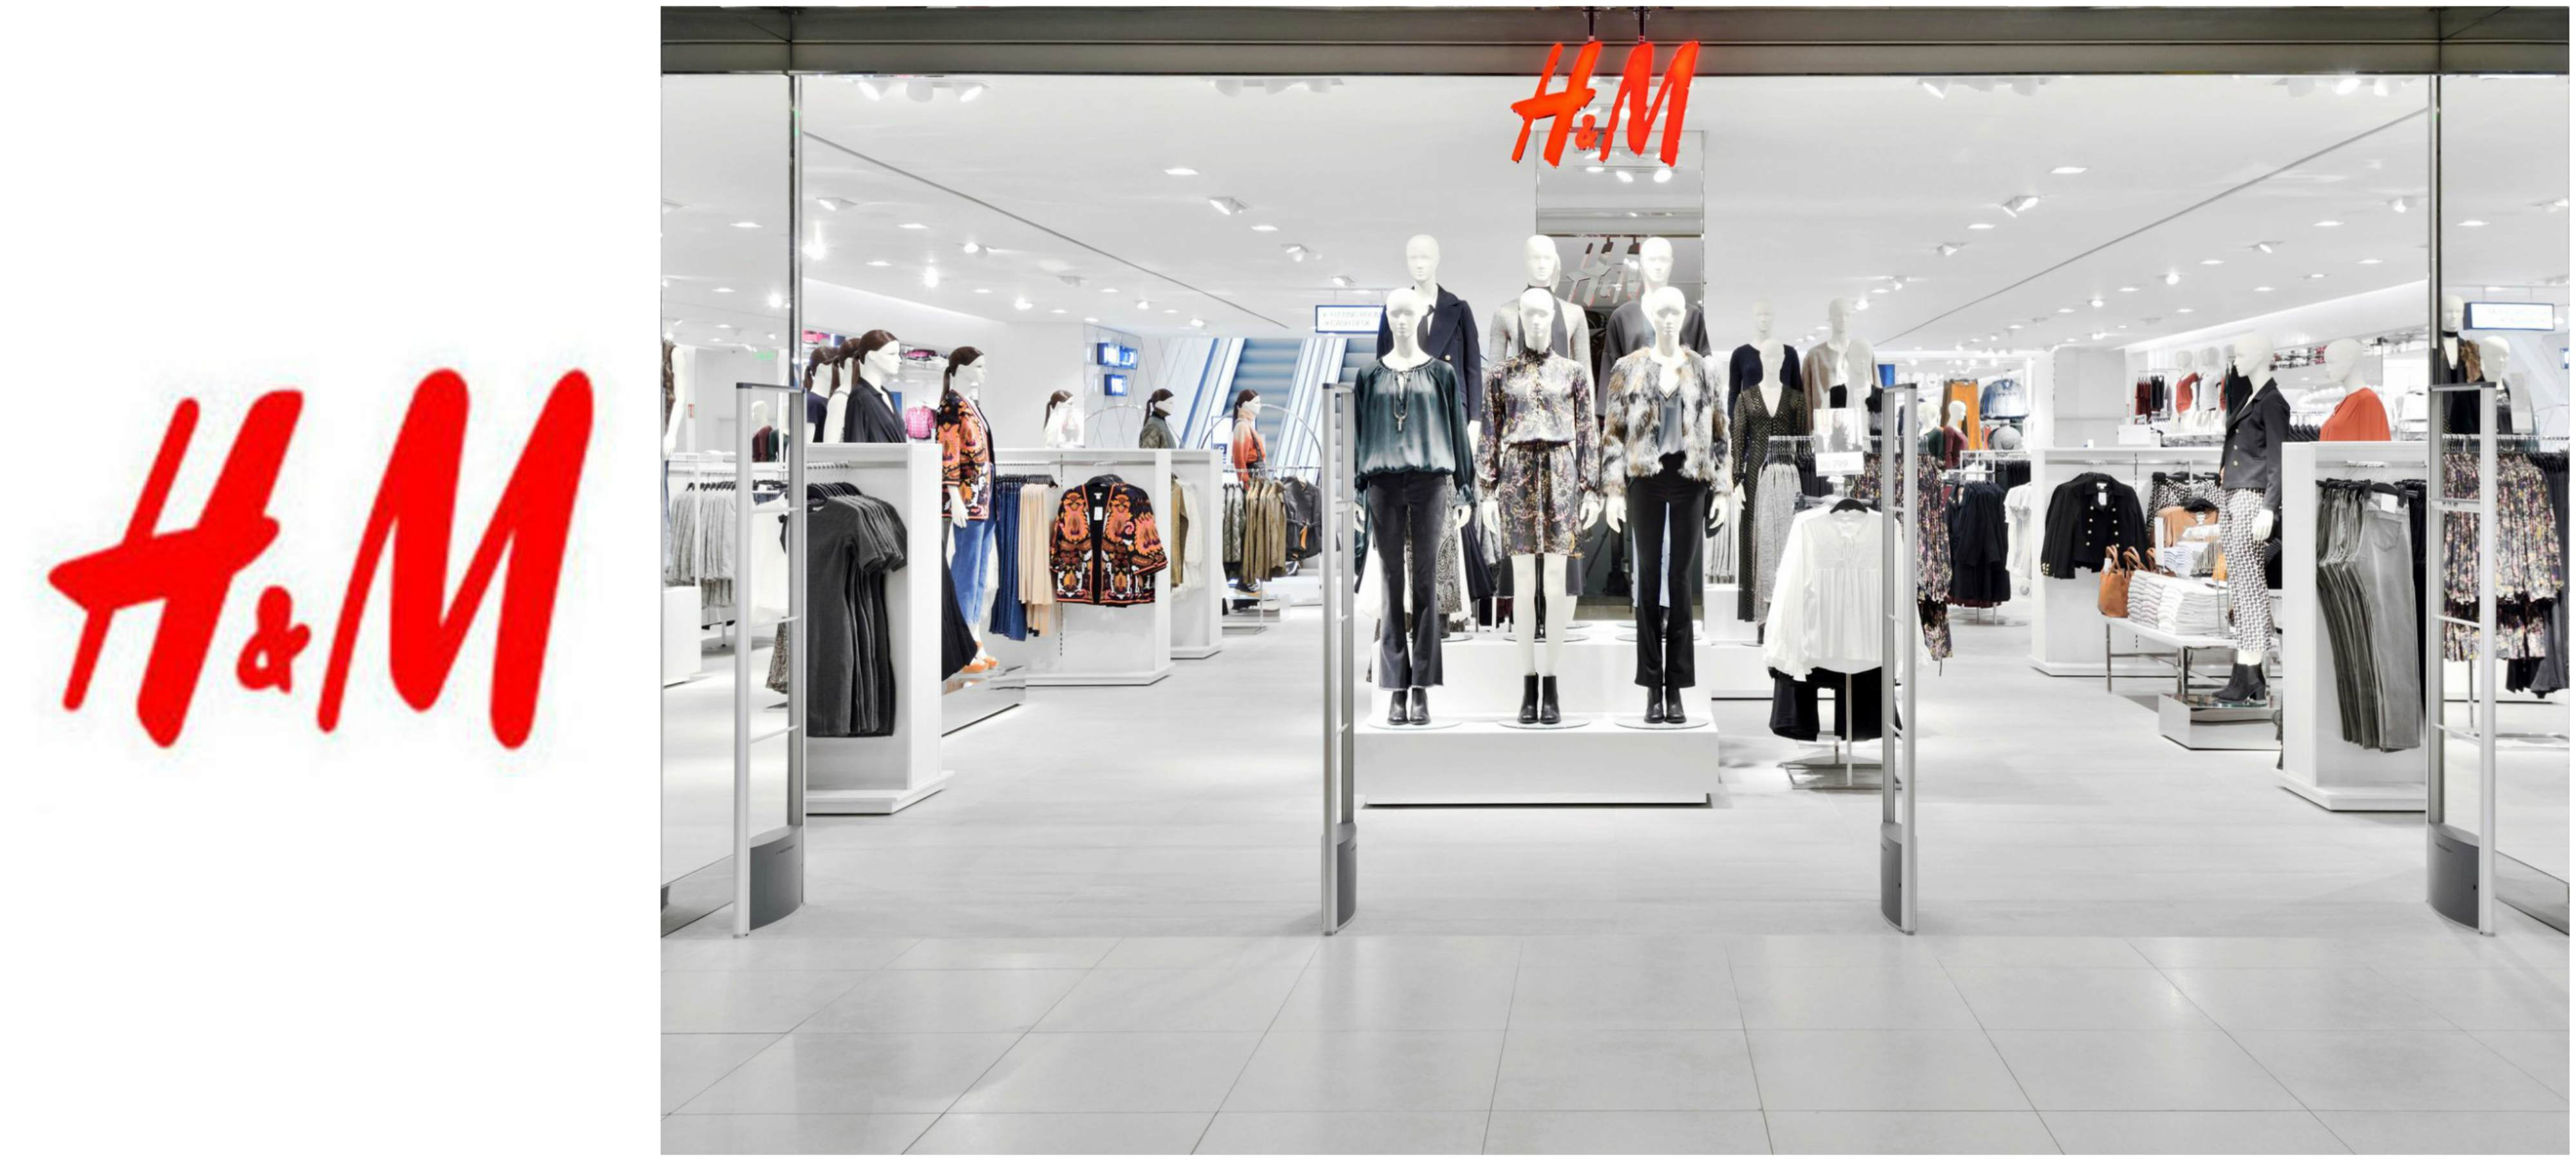 Top 10 most popular fashion brands in the world - H M Brand Value 18 82 Billion H M Most Expensive Clothing